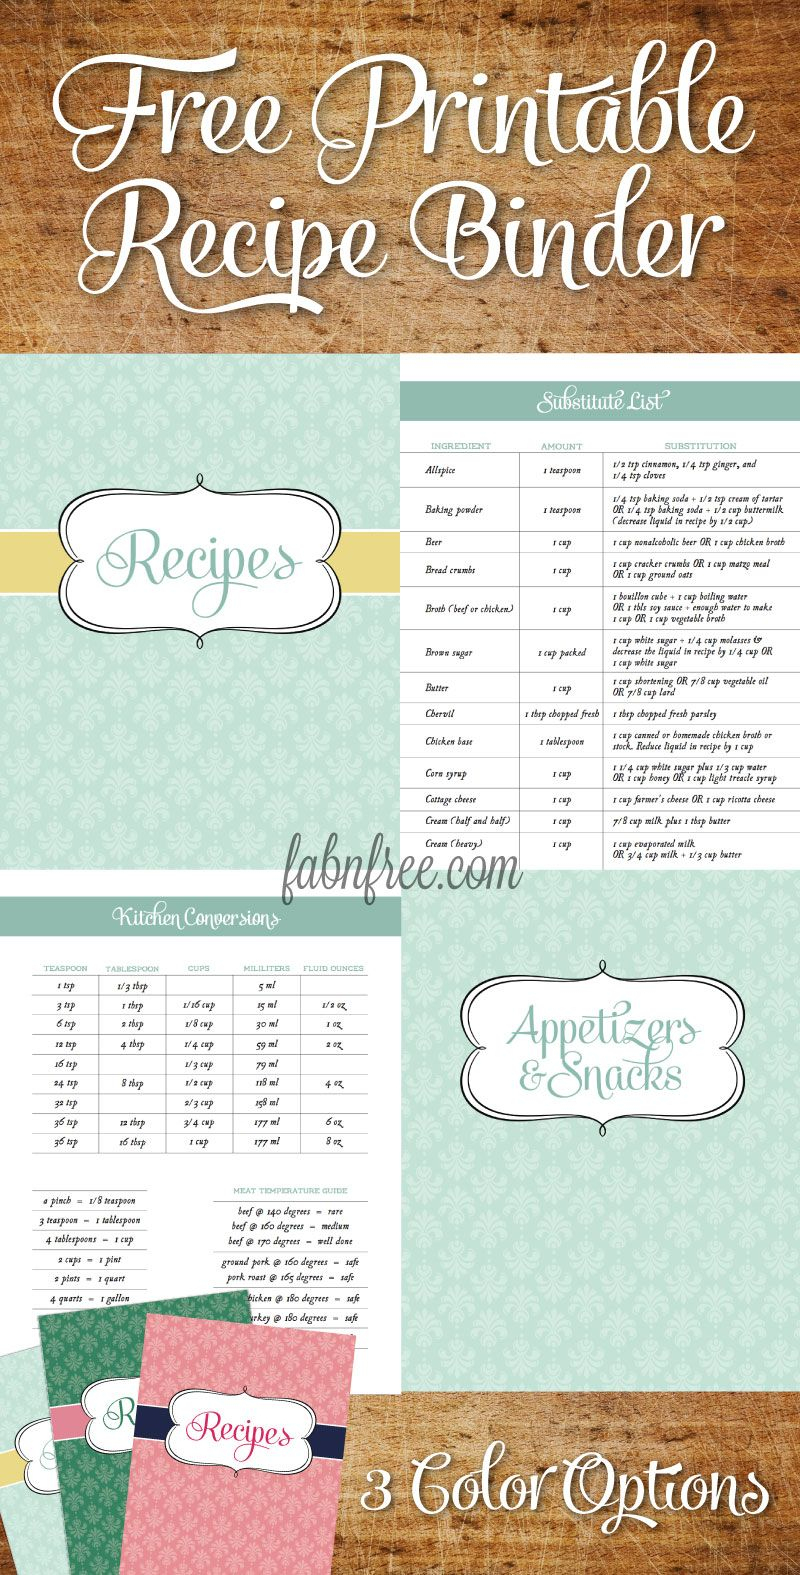 Free Recipe Binder In 3 Color Options   Fabnfree // Our Free Stuff - Free Printable Recipes